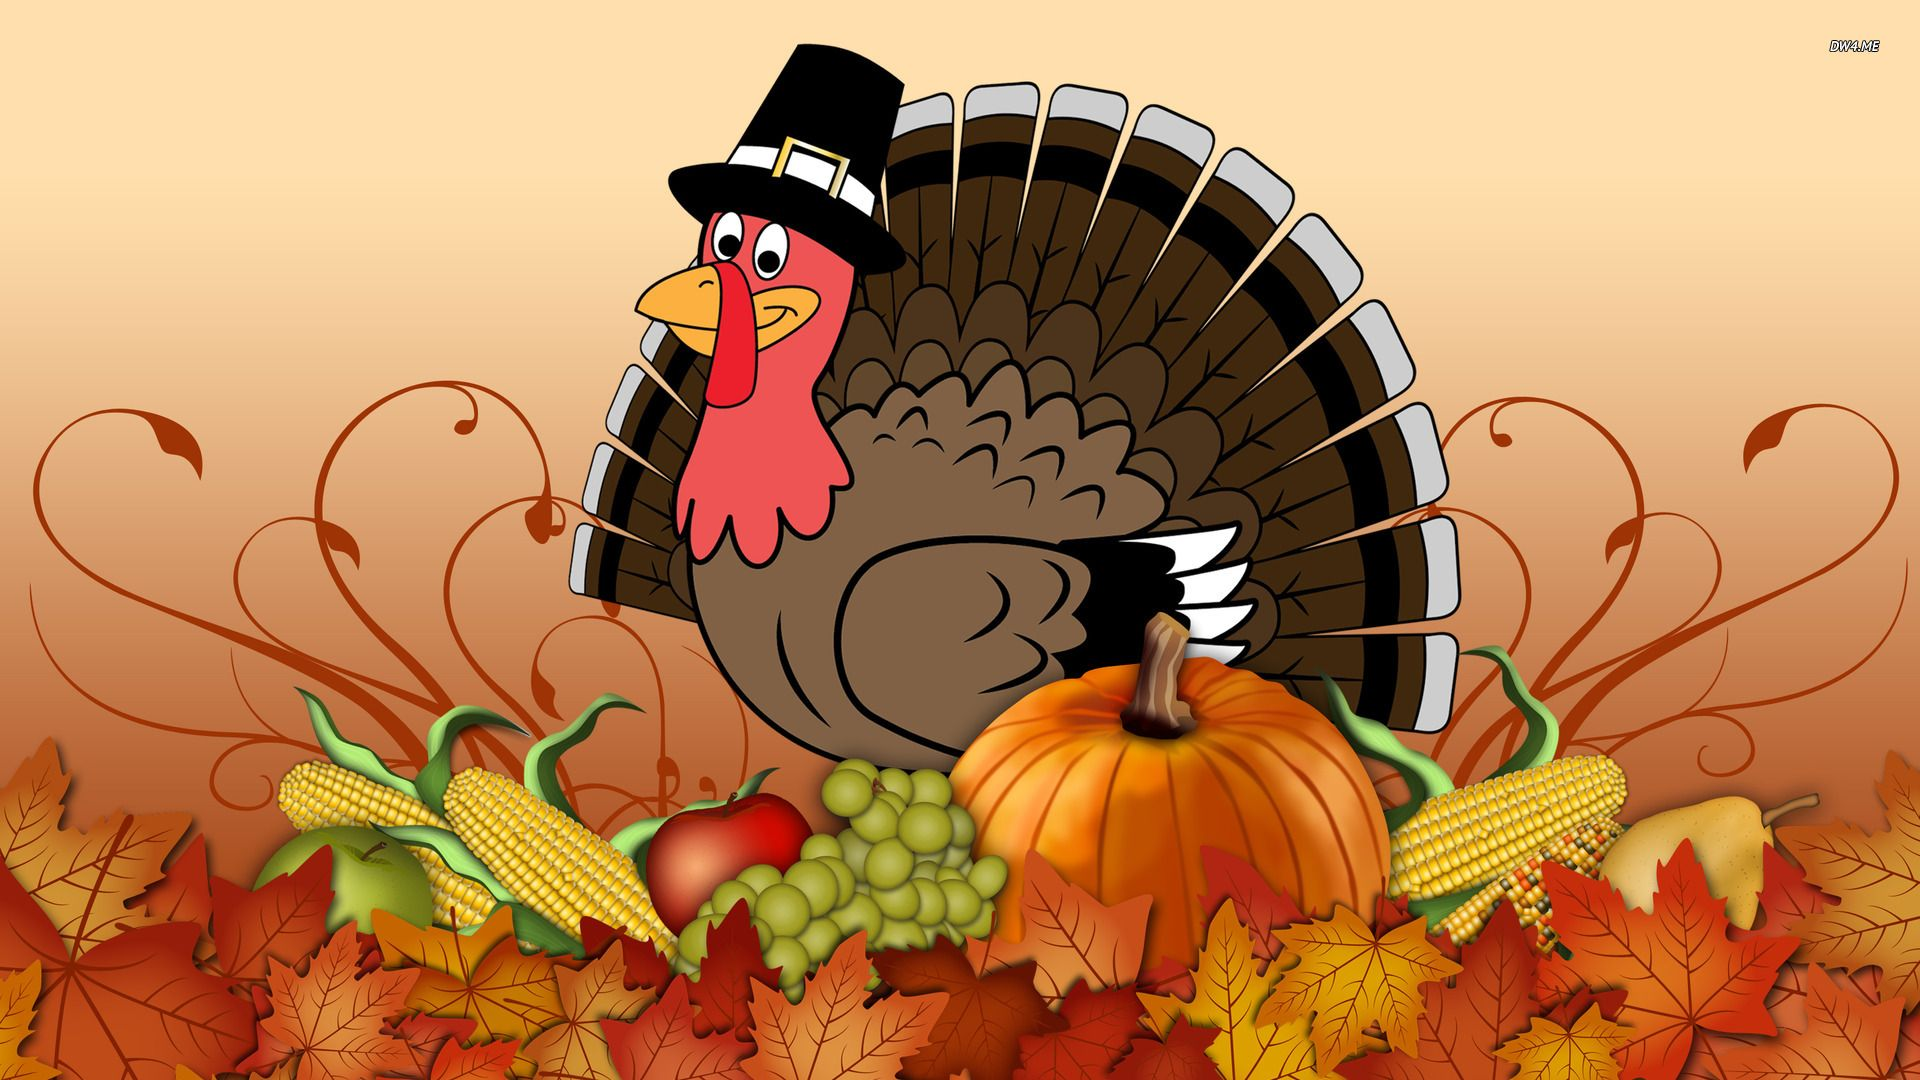 40 Free Thanksgiving Background Wallpapers For Desktop Happy Thanksgiving Wallpaper Free Thanksgiving Wallpaper Thanksgiving Background